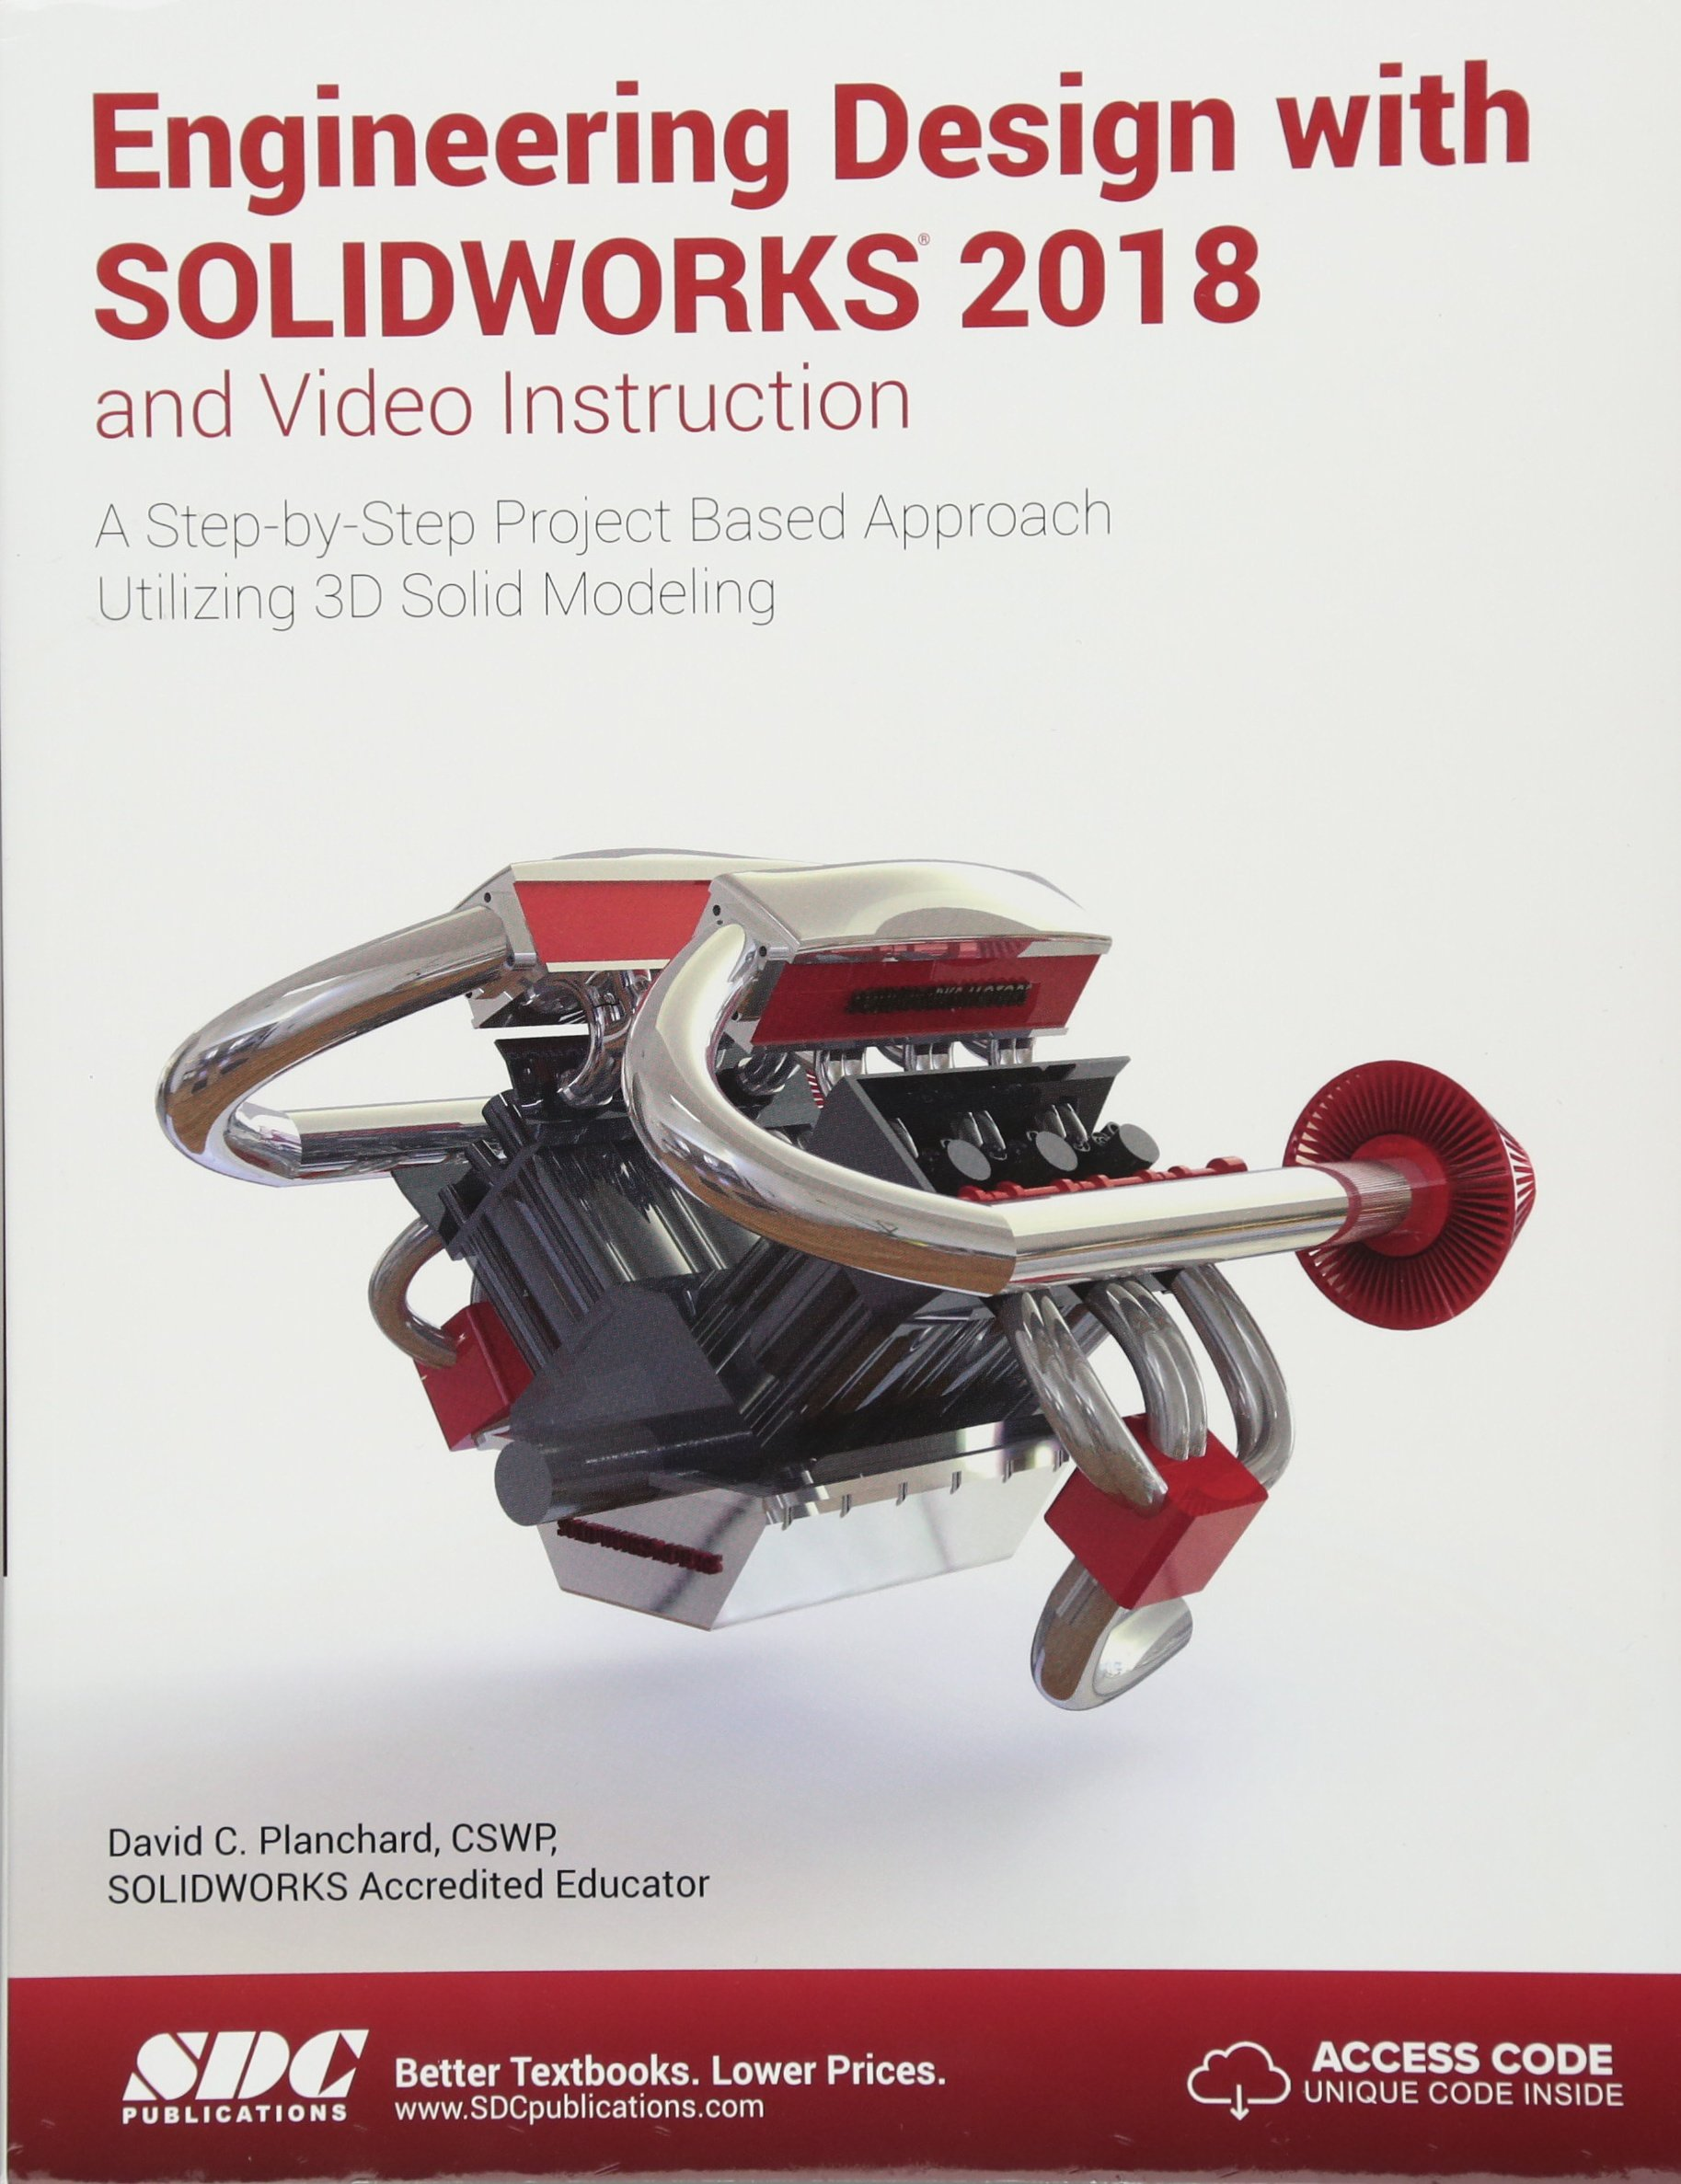 Engineering Design With Solidworks 2018 And Video Instruction David Planchard 9781630571474 Amazon Com Books